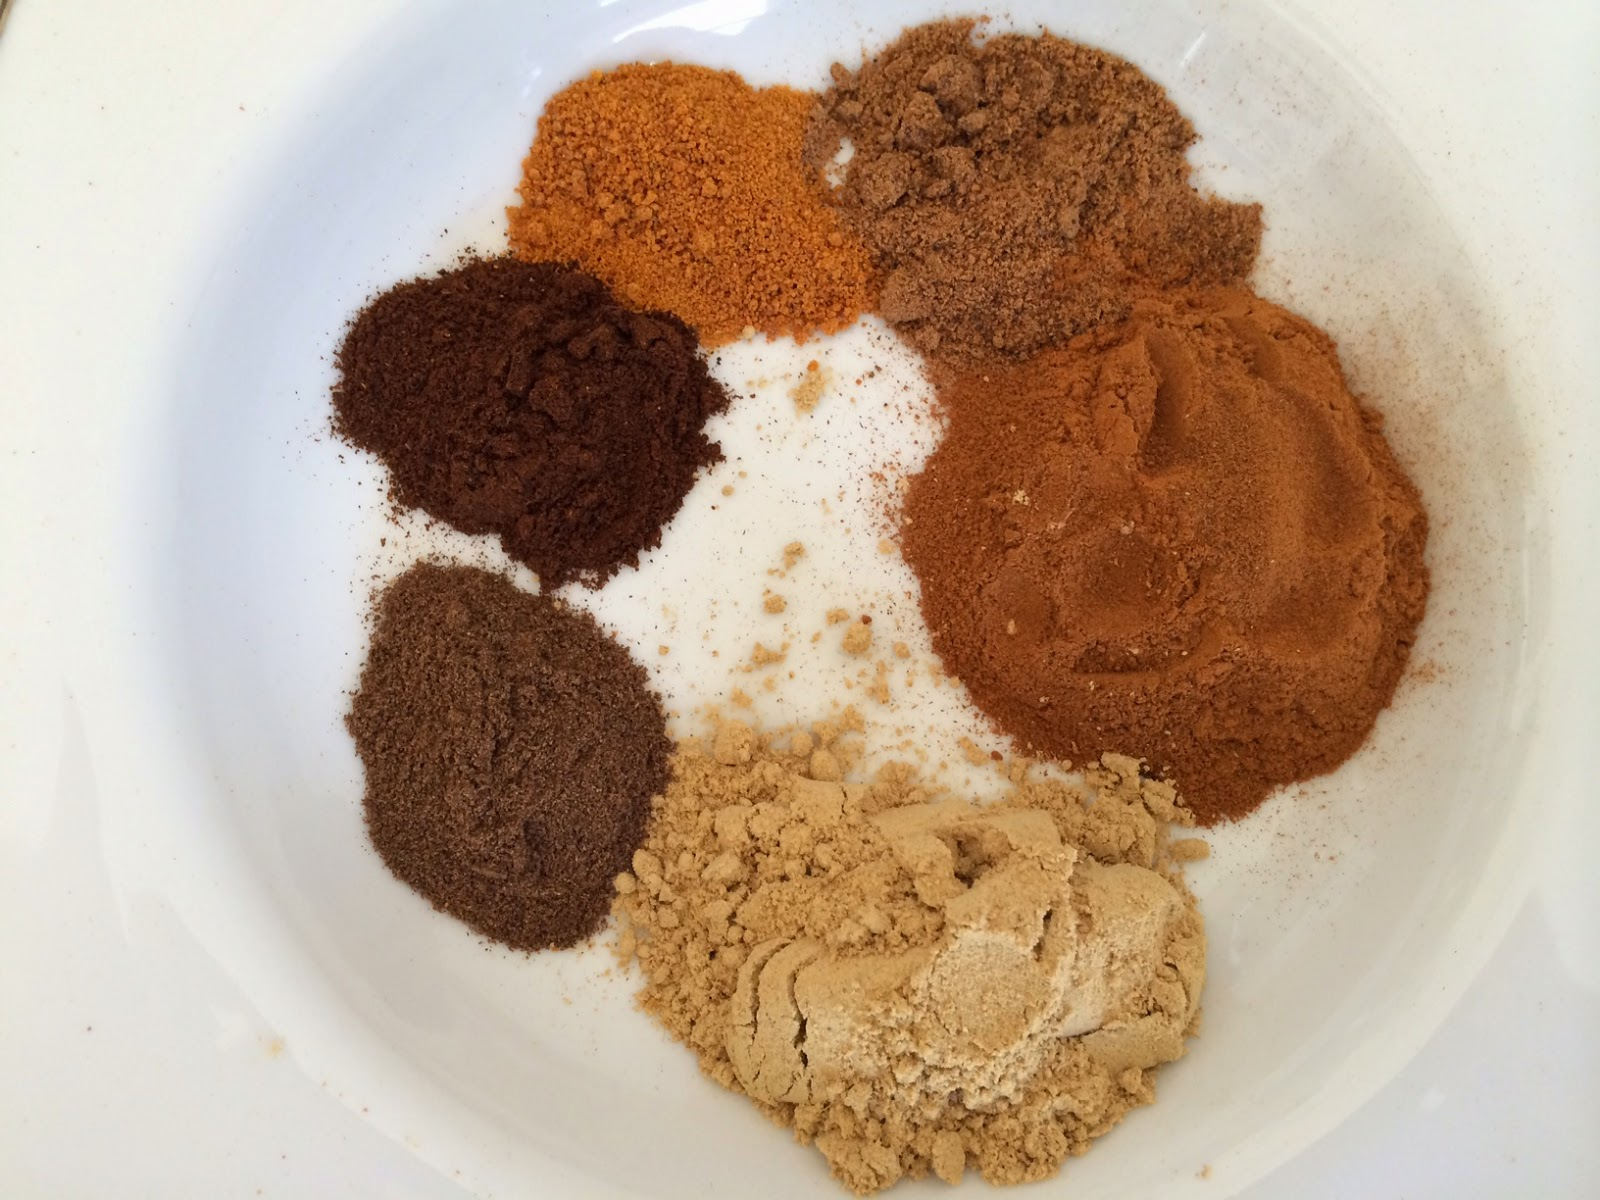 Pumpkin Pie Spice Blend: ginger, allspice, cloves, mace, nutmeg, cinnamon